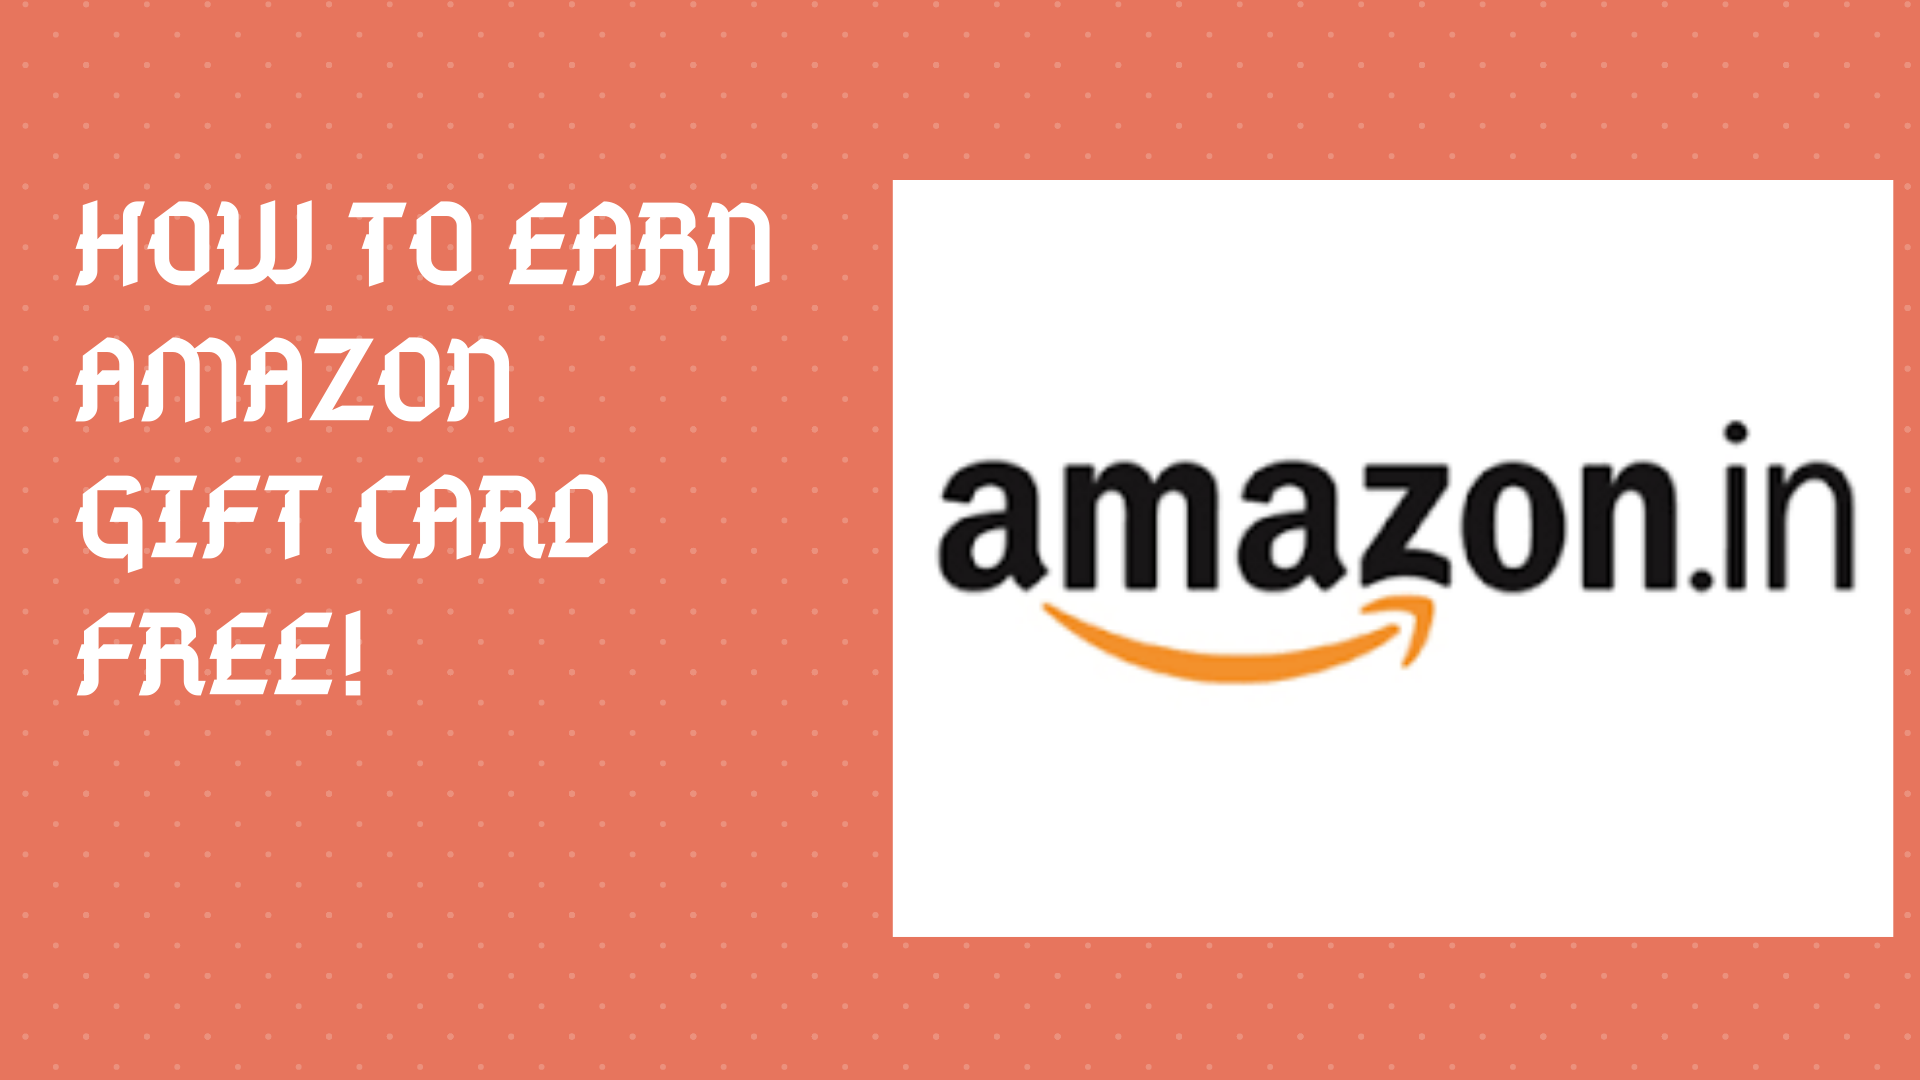 How To Earn Free Amazon Gift Cards? [Updated - 2020]